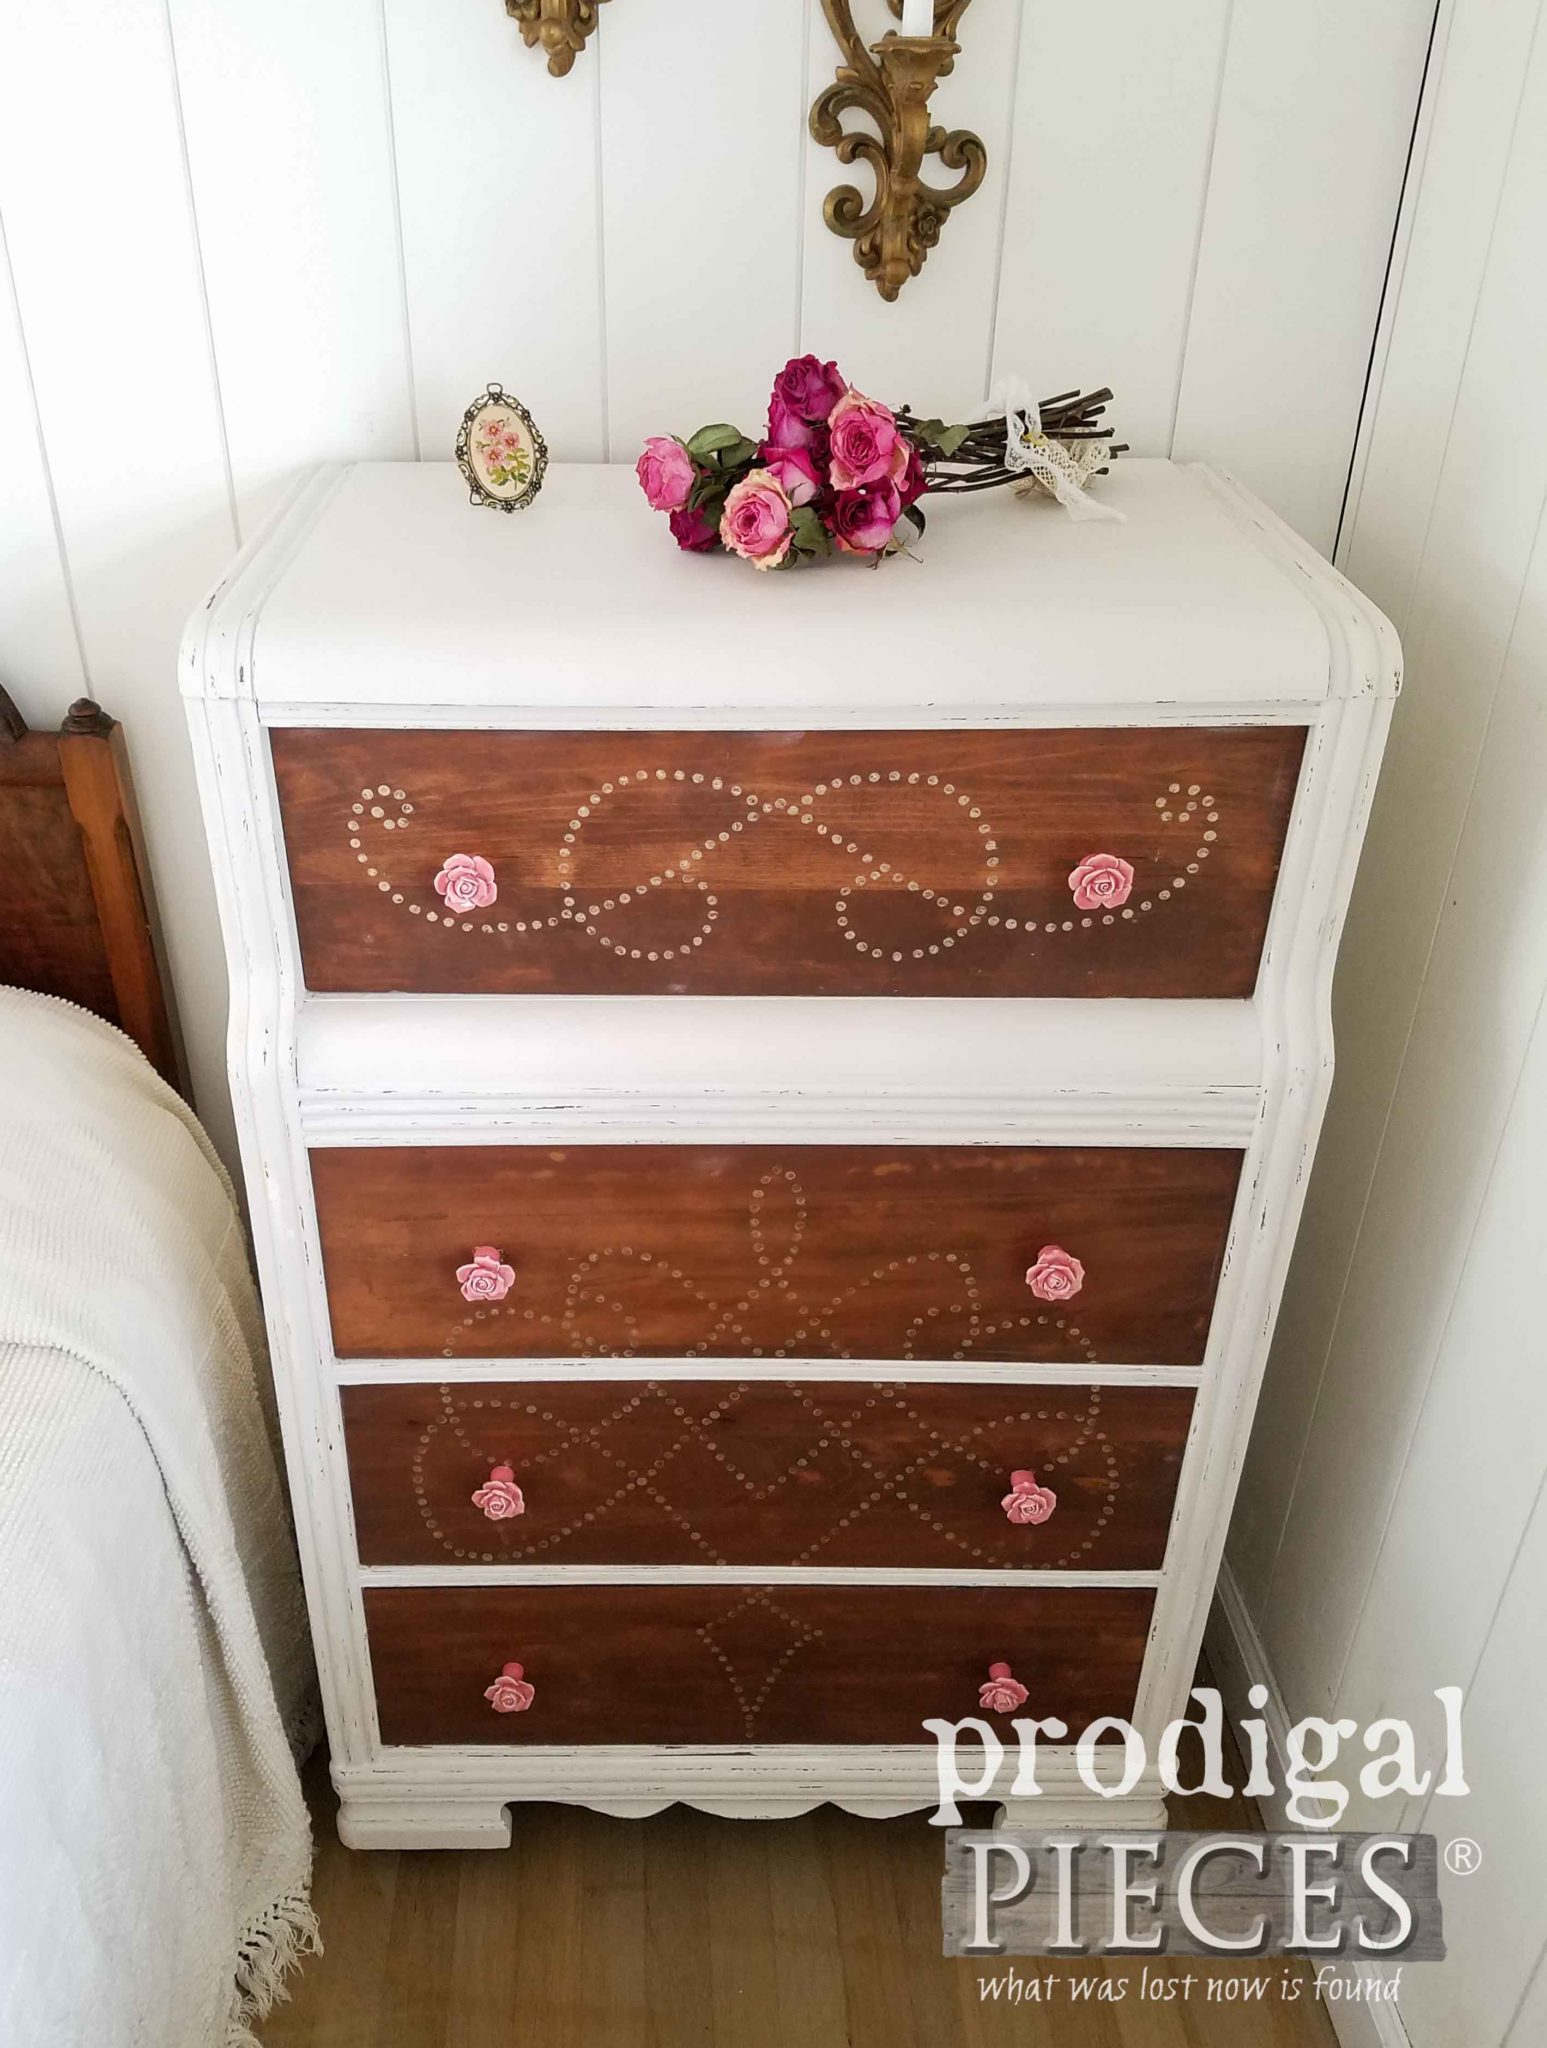 Art Deco Chest of Drawers with Rose Drawer Knobs by Prodigal Pieces | prodigalpieces.com